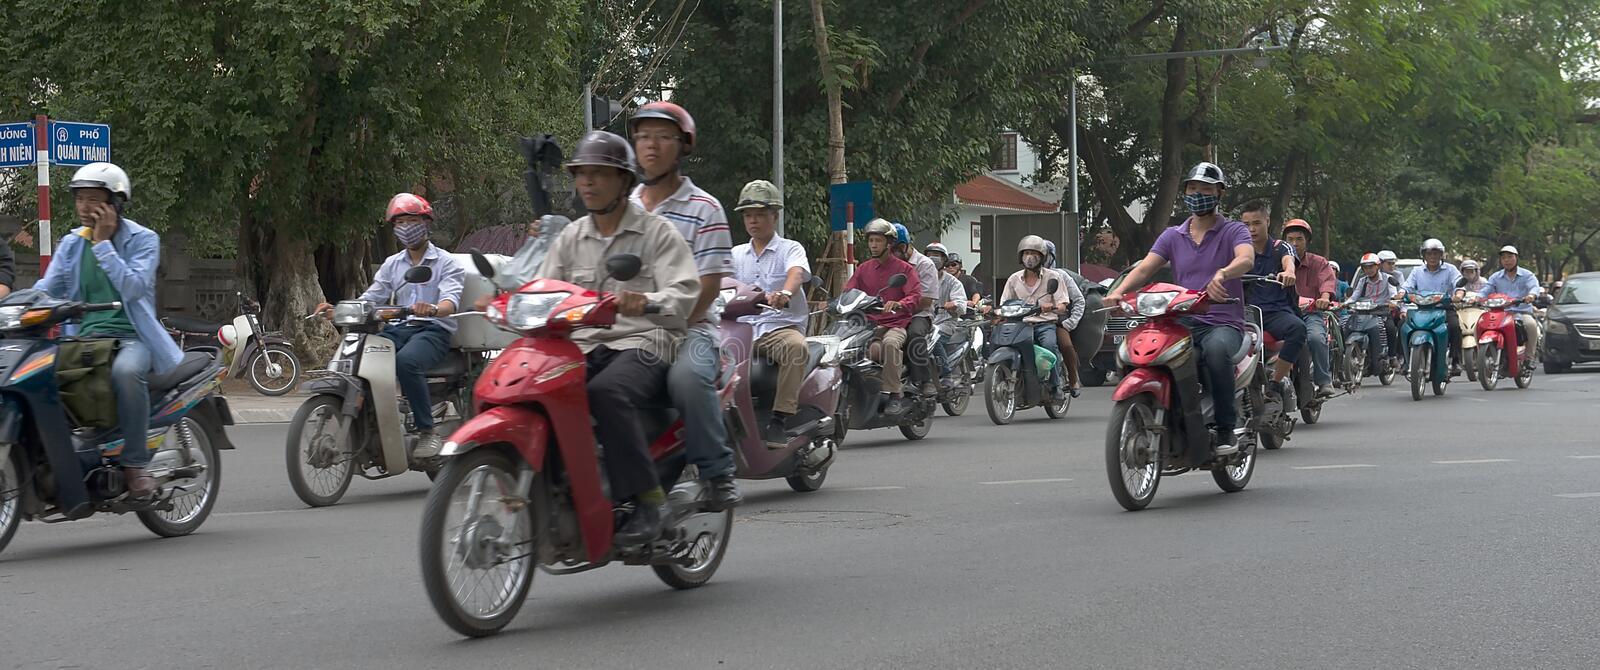 Traffic Jam in Ho Chi Minh City Vietnam. People on motorbikes in Vietnam